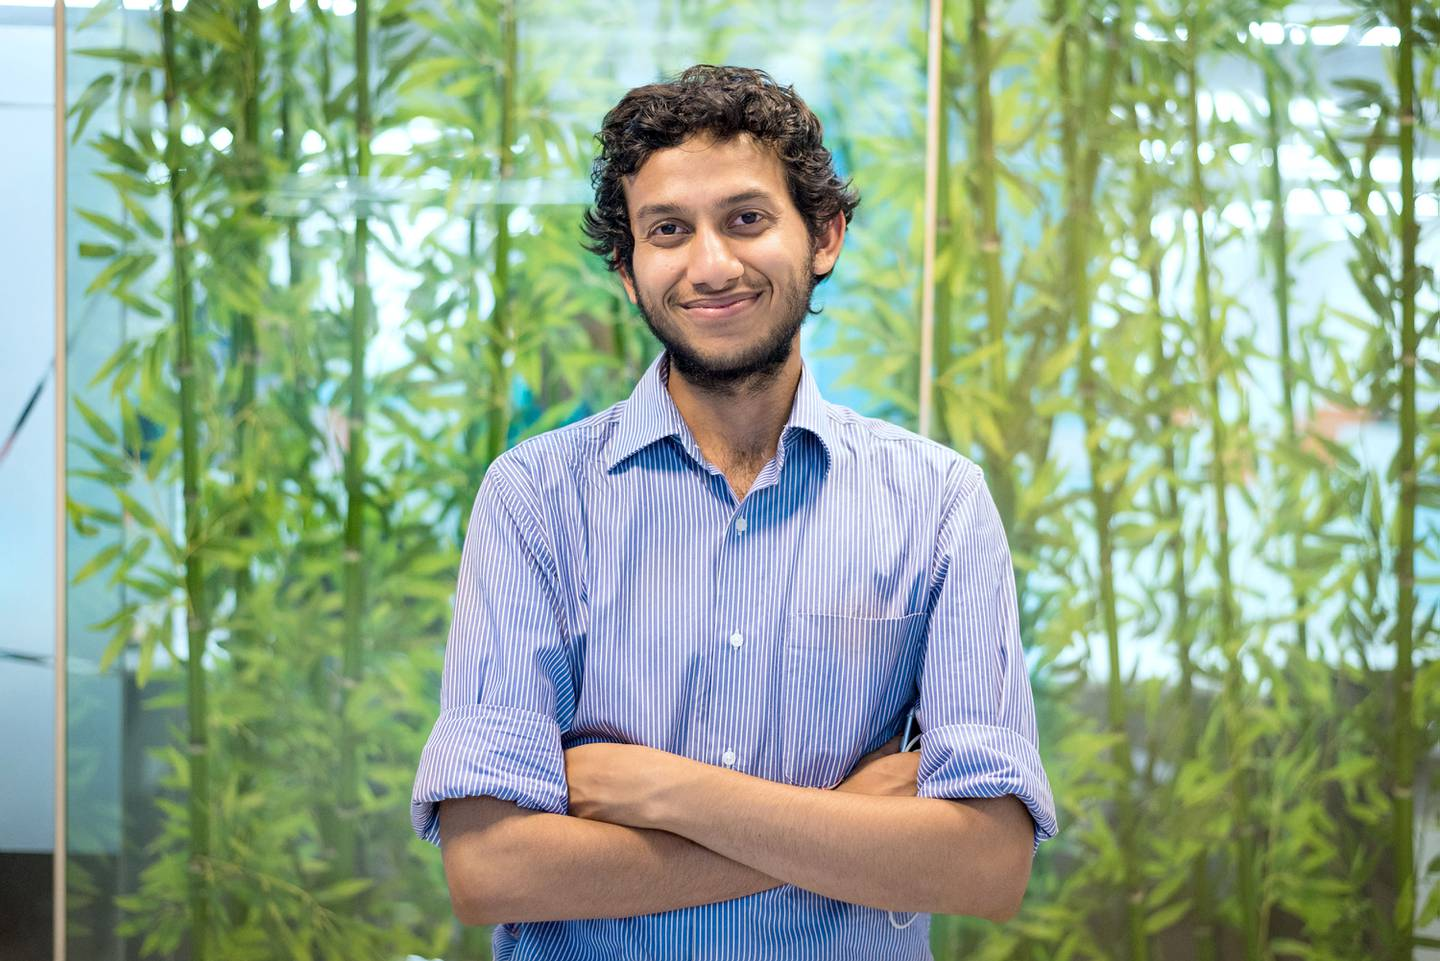 Ritesh Agarwal, founder of OYO Rooms based in Gurgaon, a satellite city of Delhi, India. Just over two-and-a-half years after its launch, OYO now has about 5,000 hotels as part of its network in 175 cities across India. Courtesy OYO Rooms  *** Local Caption ***  _DSC3420(1).jpg